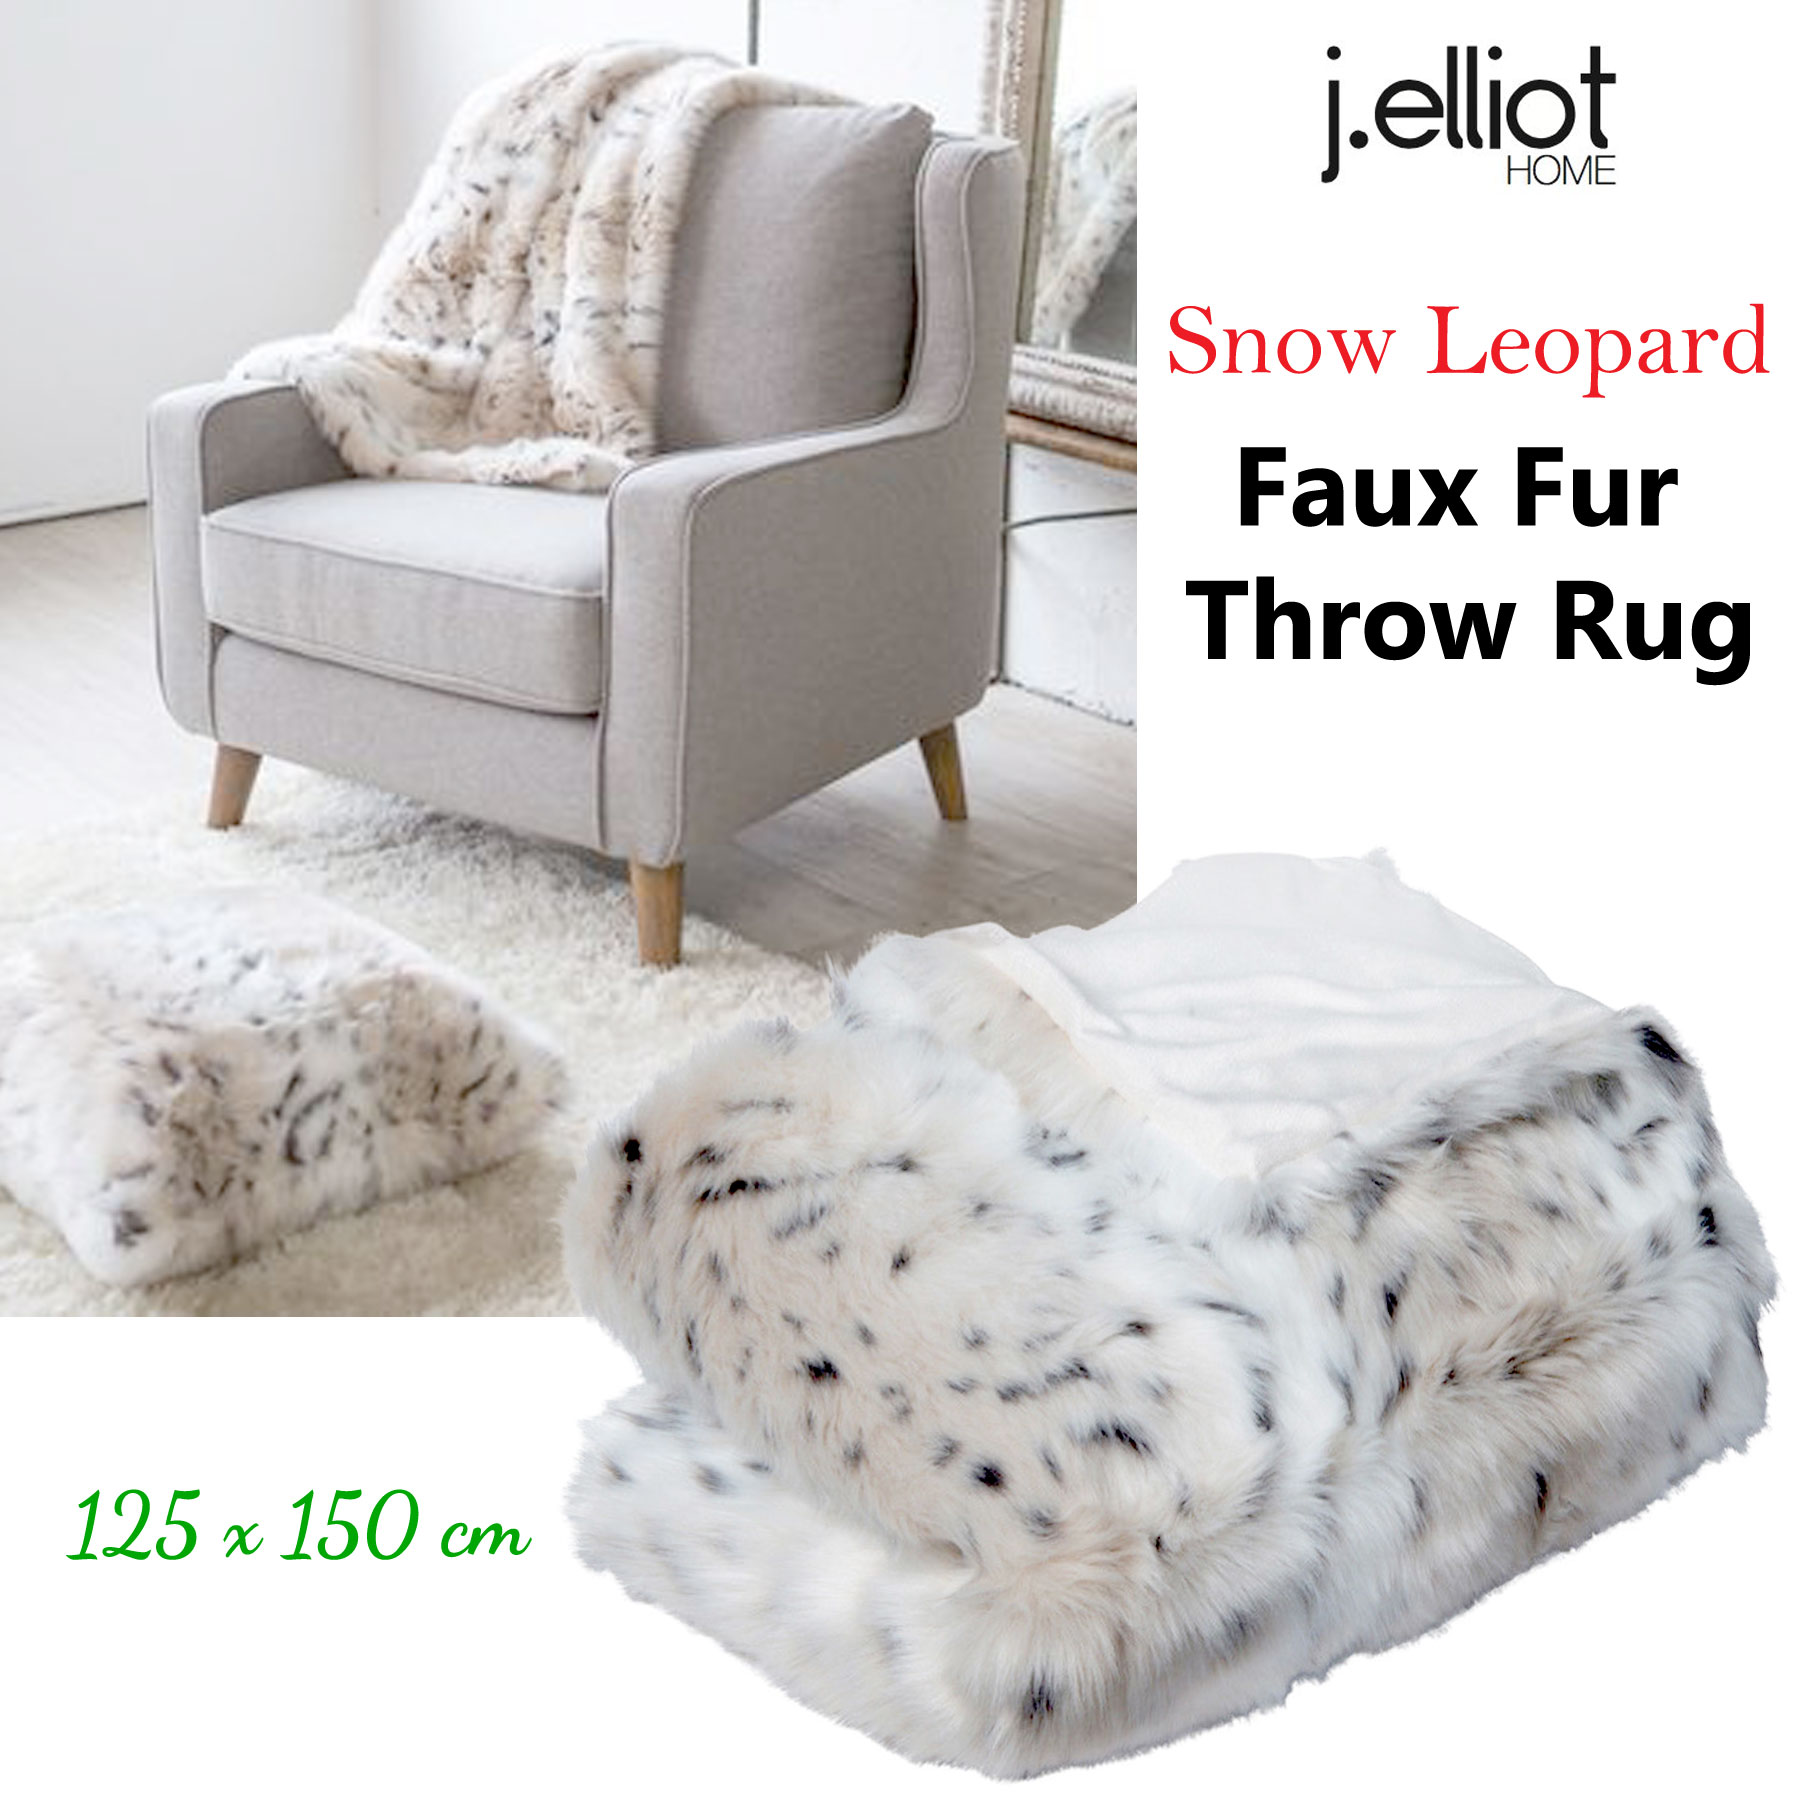 Details About Luxury Faux Fur Lounge Sofa Throw Blanket Rug Cream Snow Leopard 125 X 150 Cm By